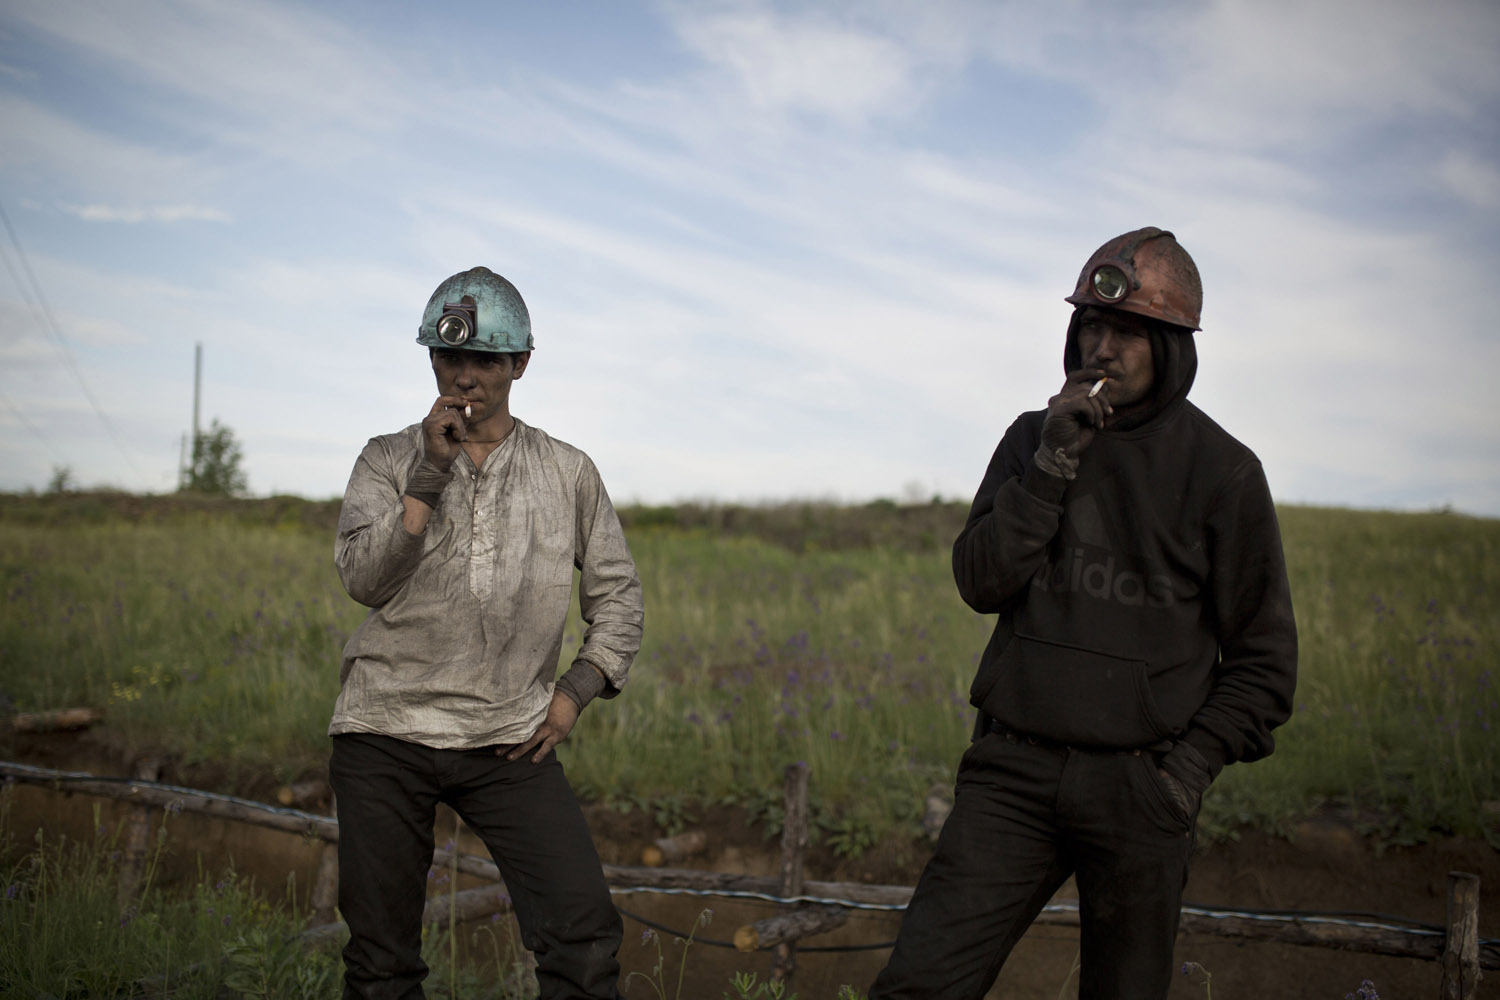 Tolek (21) and Tolek (23), smoking a cigarette after an eight-hour night shift in an illegal mine in Davidovka. The mine is located a few hundred meters from their houses.